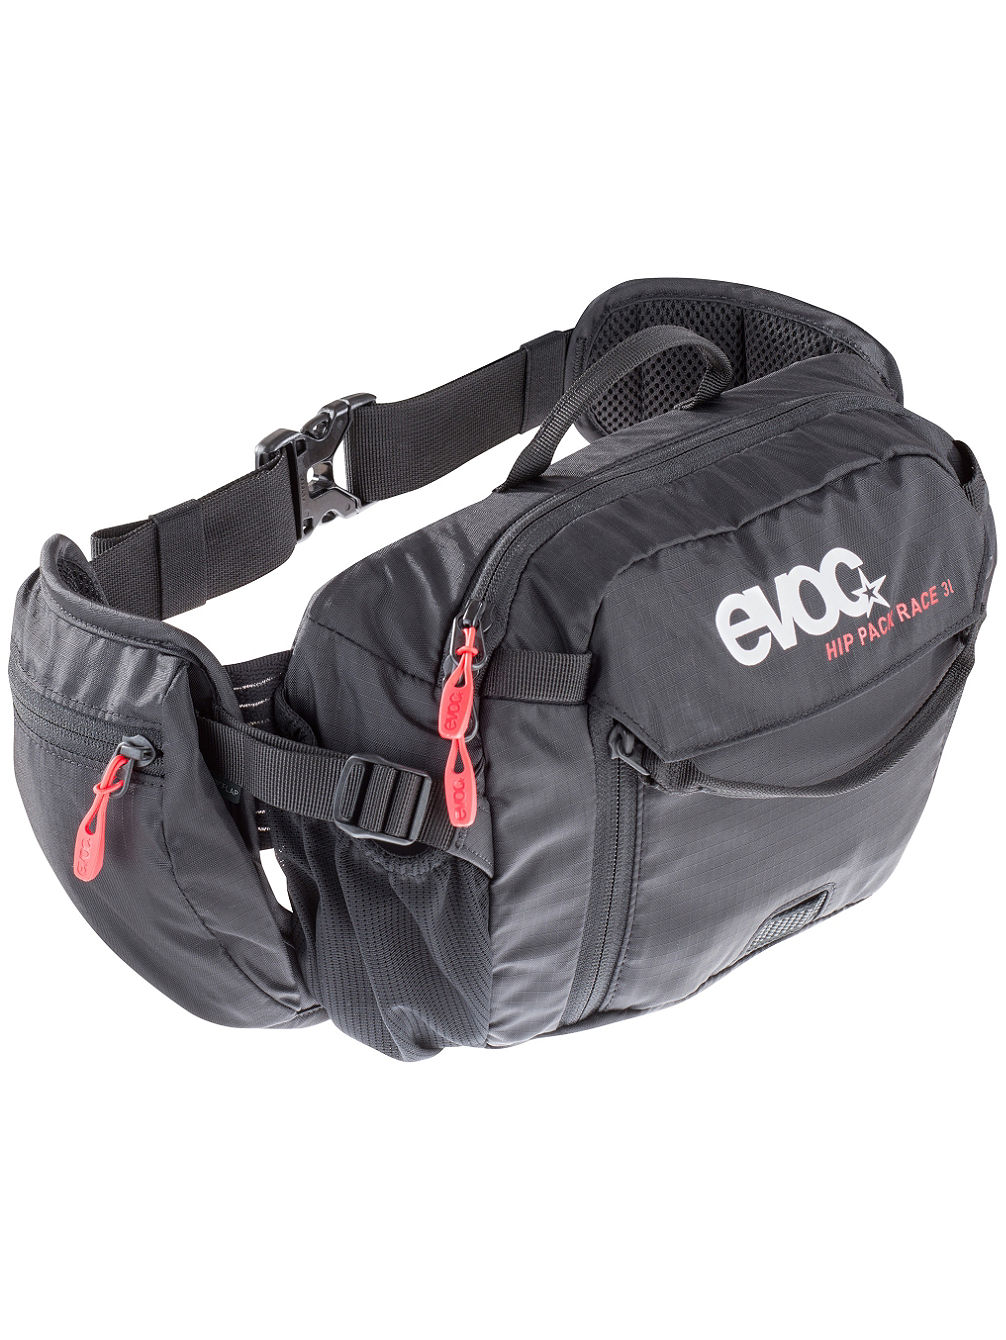 Hip Pack Race 3L + 1,5L Bladder 3 L Back